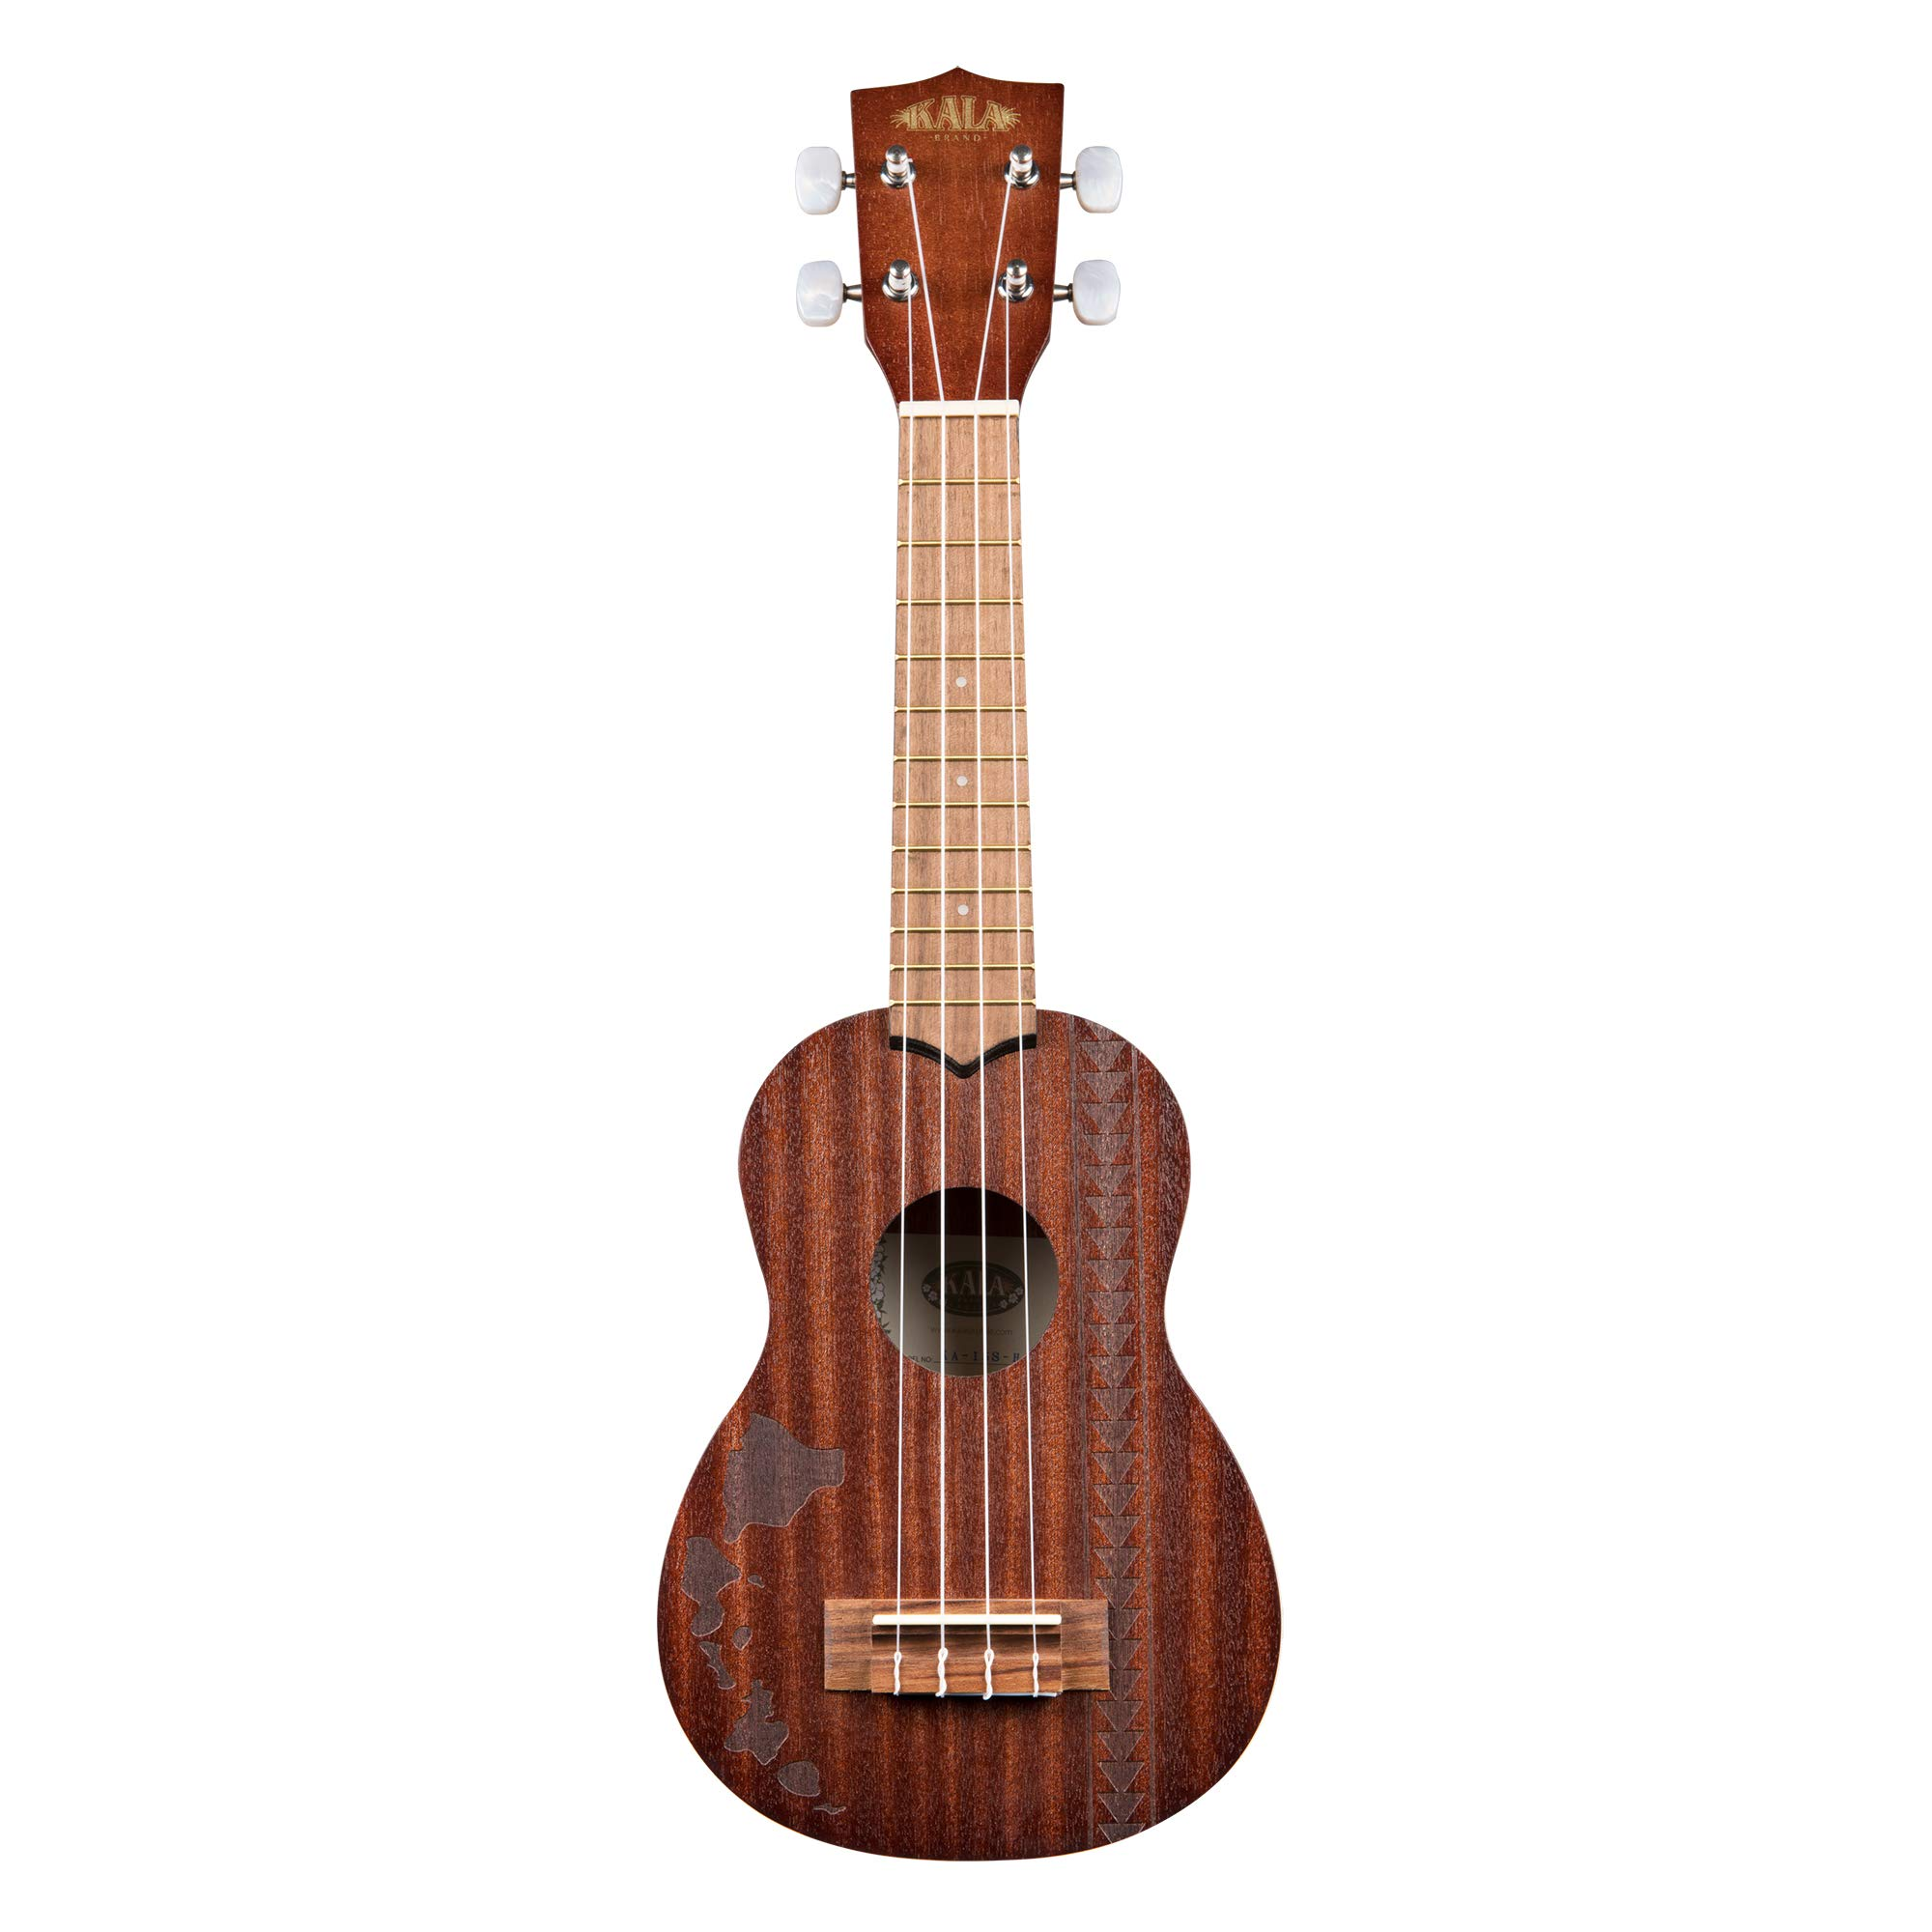 Kala Mahogany KA-15S-H2 Soprano Ukulele (Hawiian Islands with Tattoo Band) by Kala